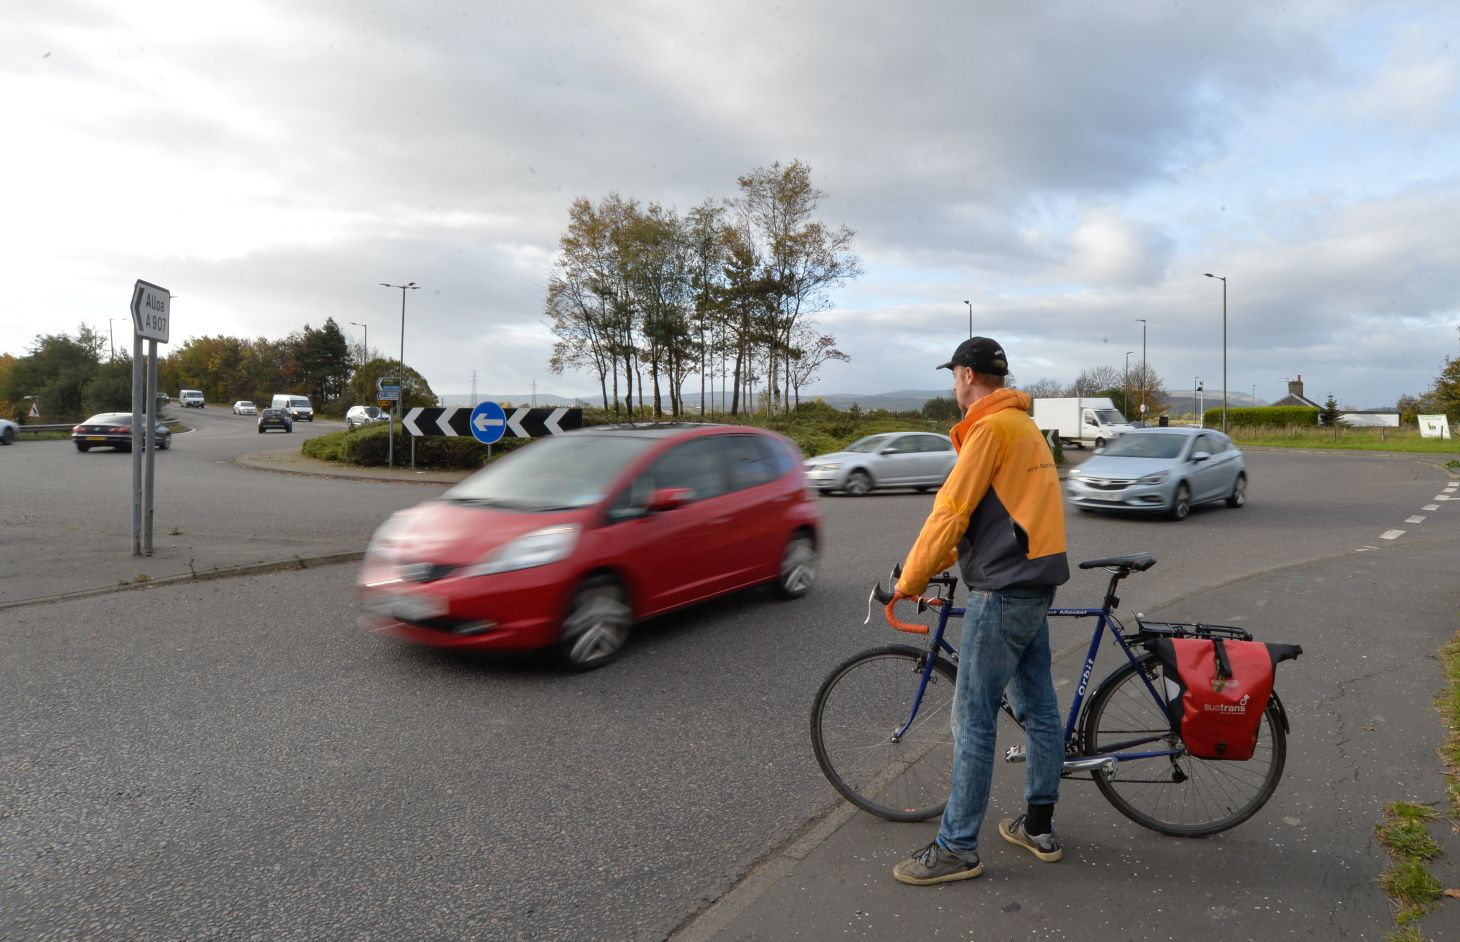 Cyclists waiting to cross road near roundabout